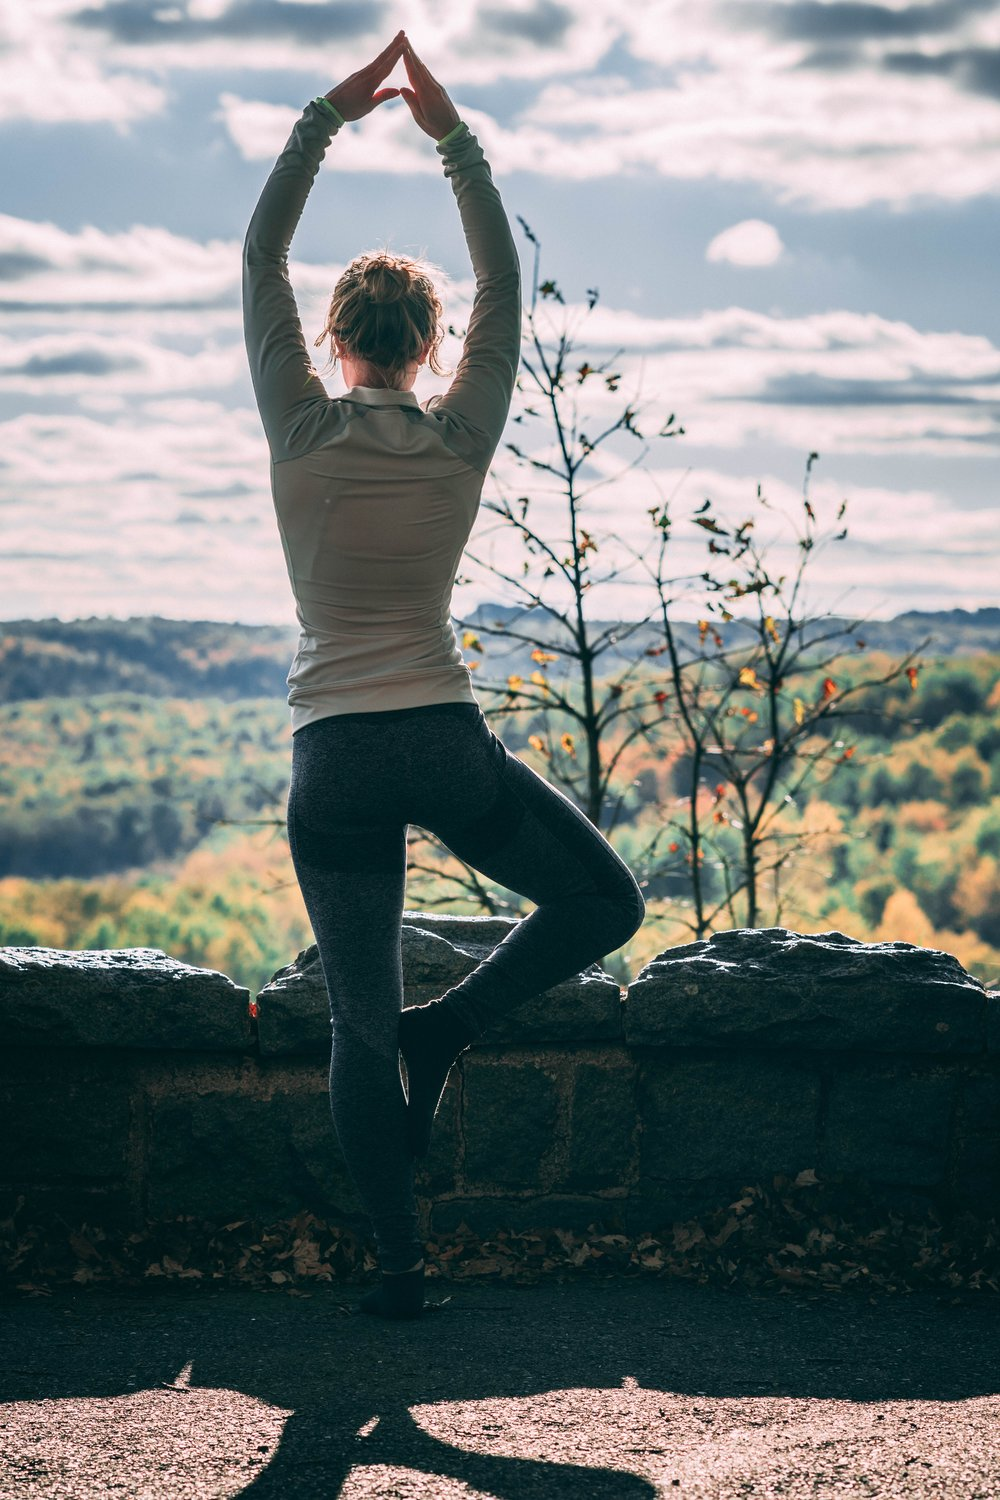 Balance training improves core strength, muscle tone, circulation and peaceful mind.